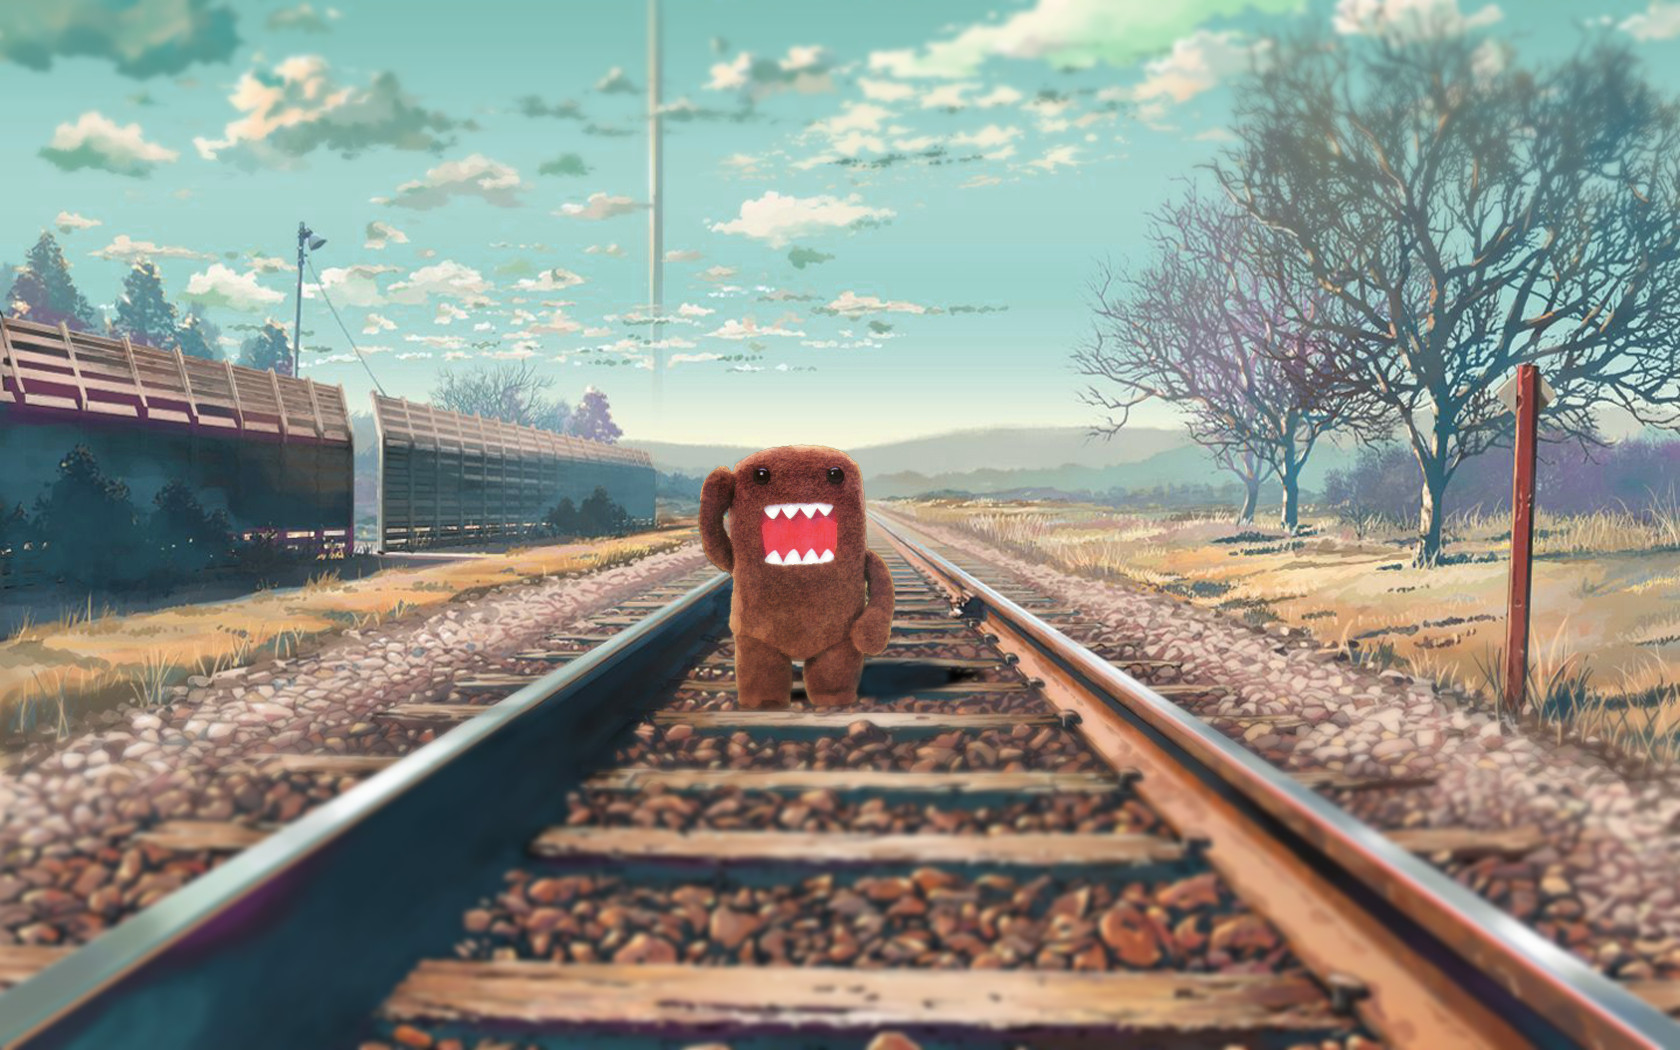 domo railroad tracks train HD Wallpaper